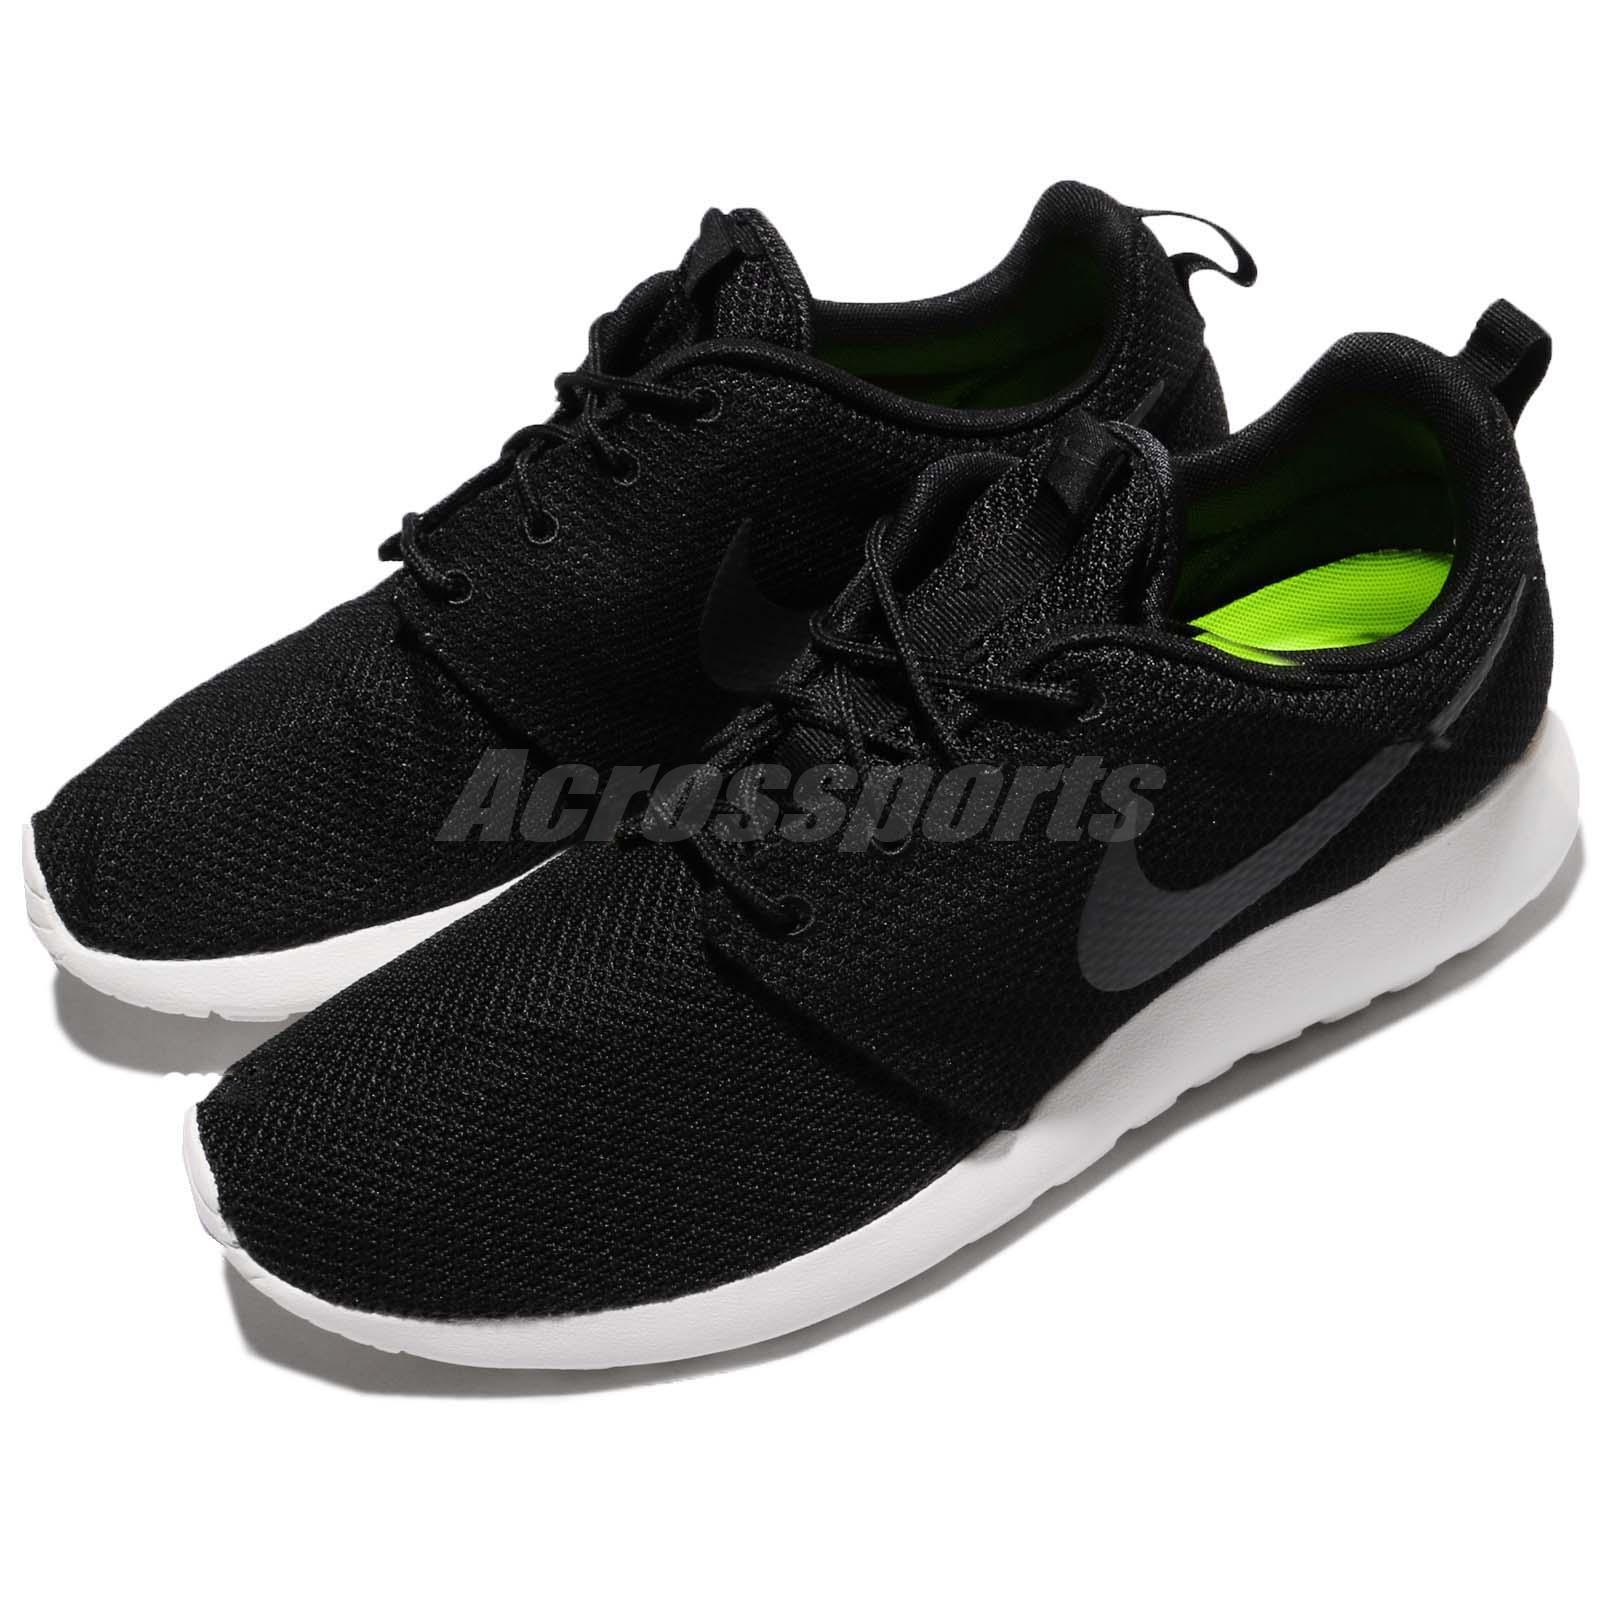 promo code 1bf91 c7d99 Details about Nike Roshe One Men Sportswear Running Casual Shoes Rosherun  Sneakers 511881-010